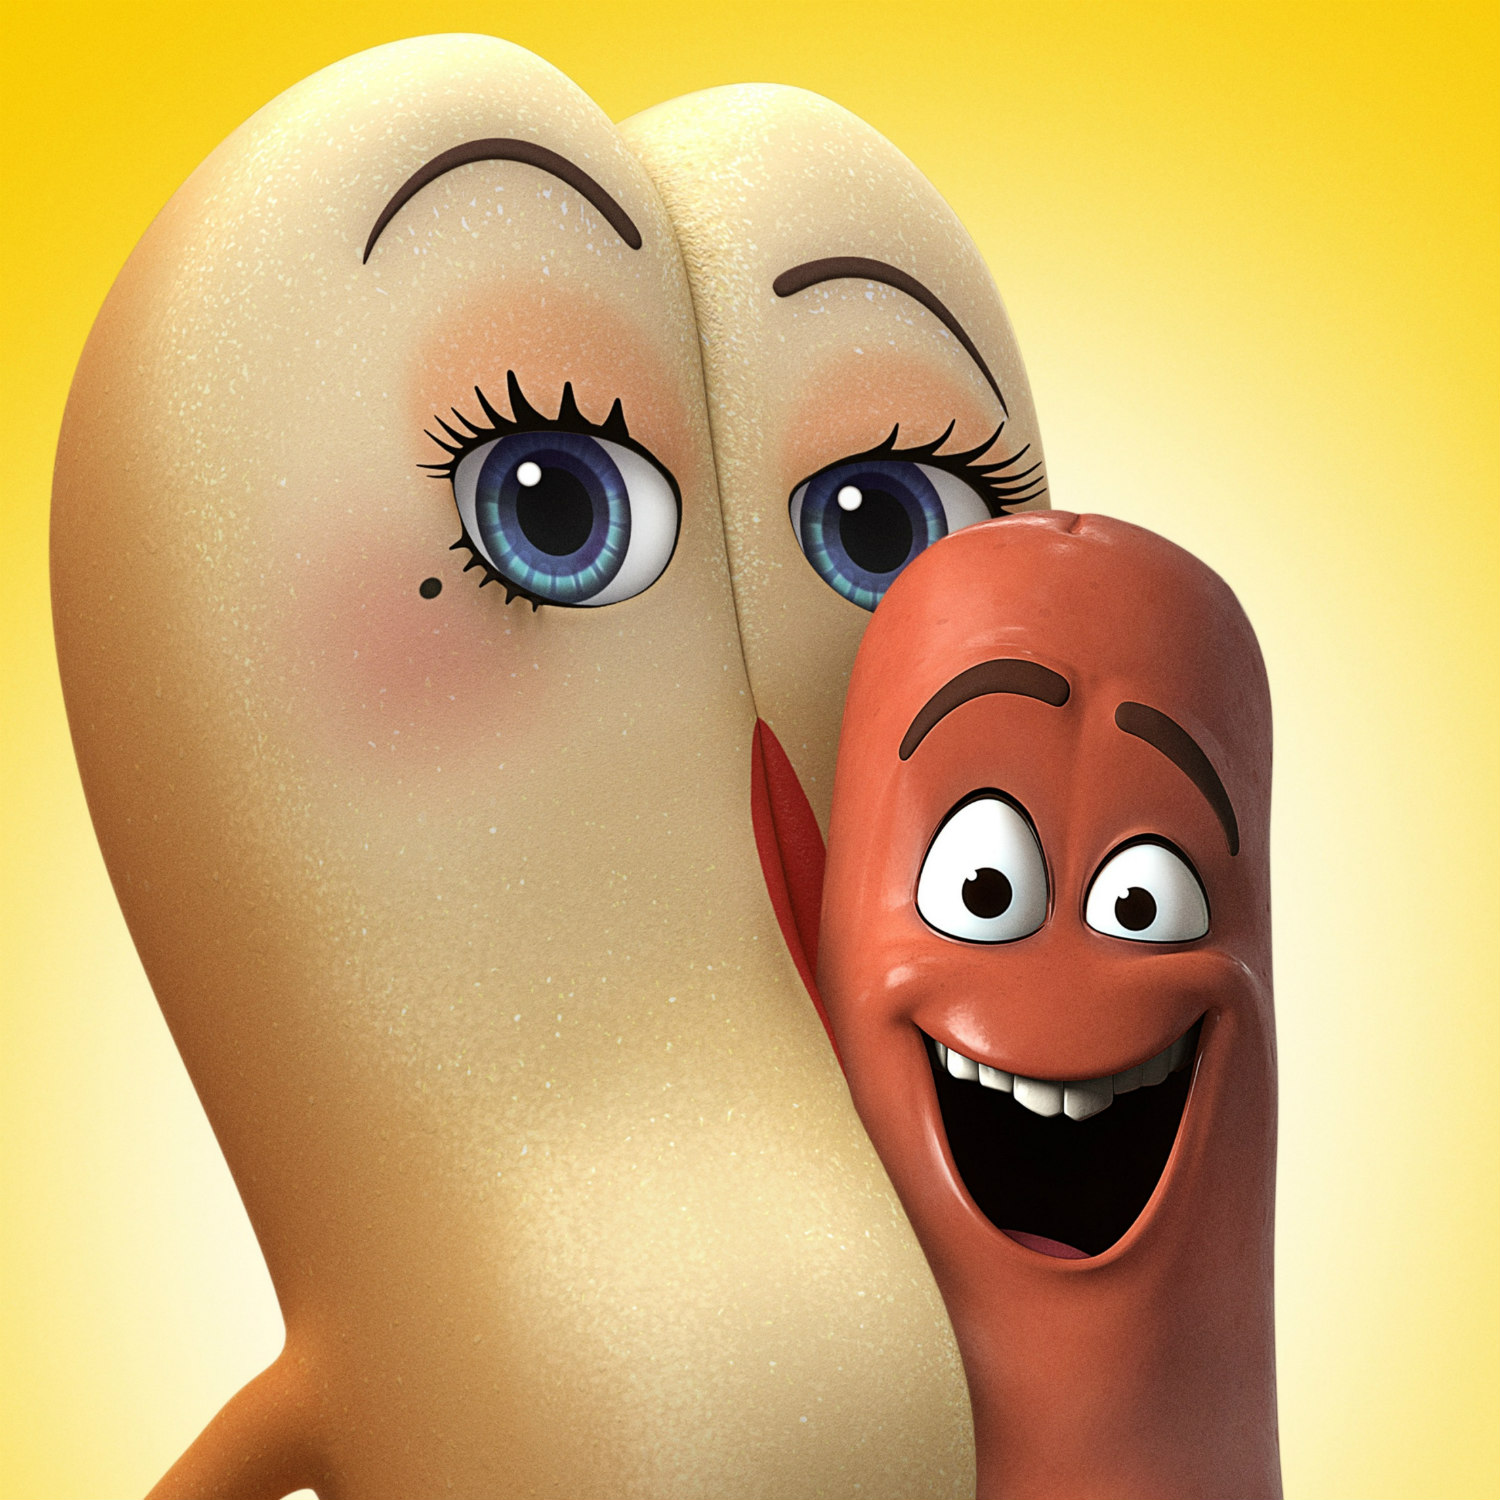 #79 | Sausage Party 2: Starbaked